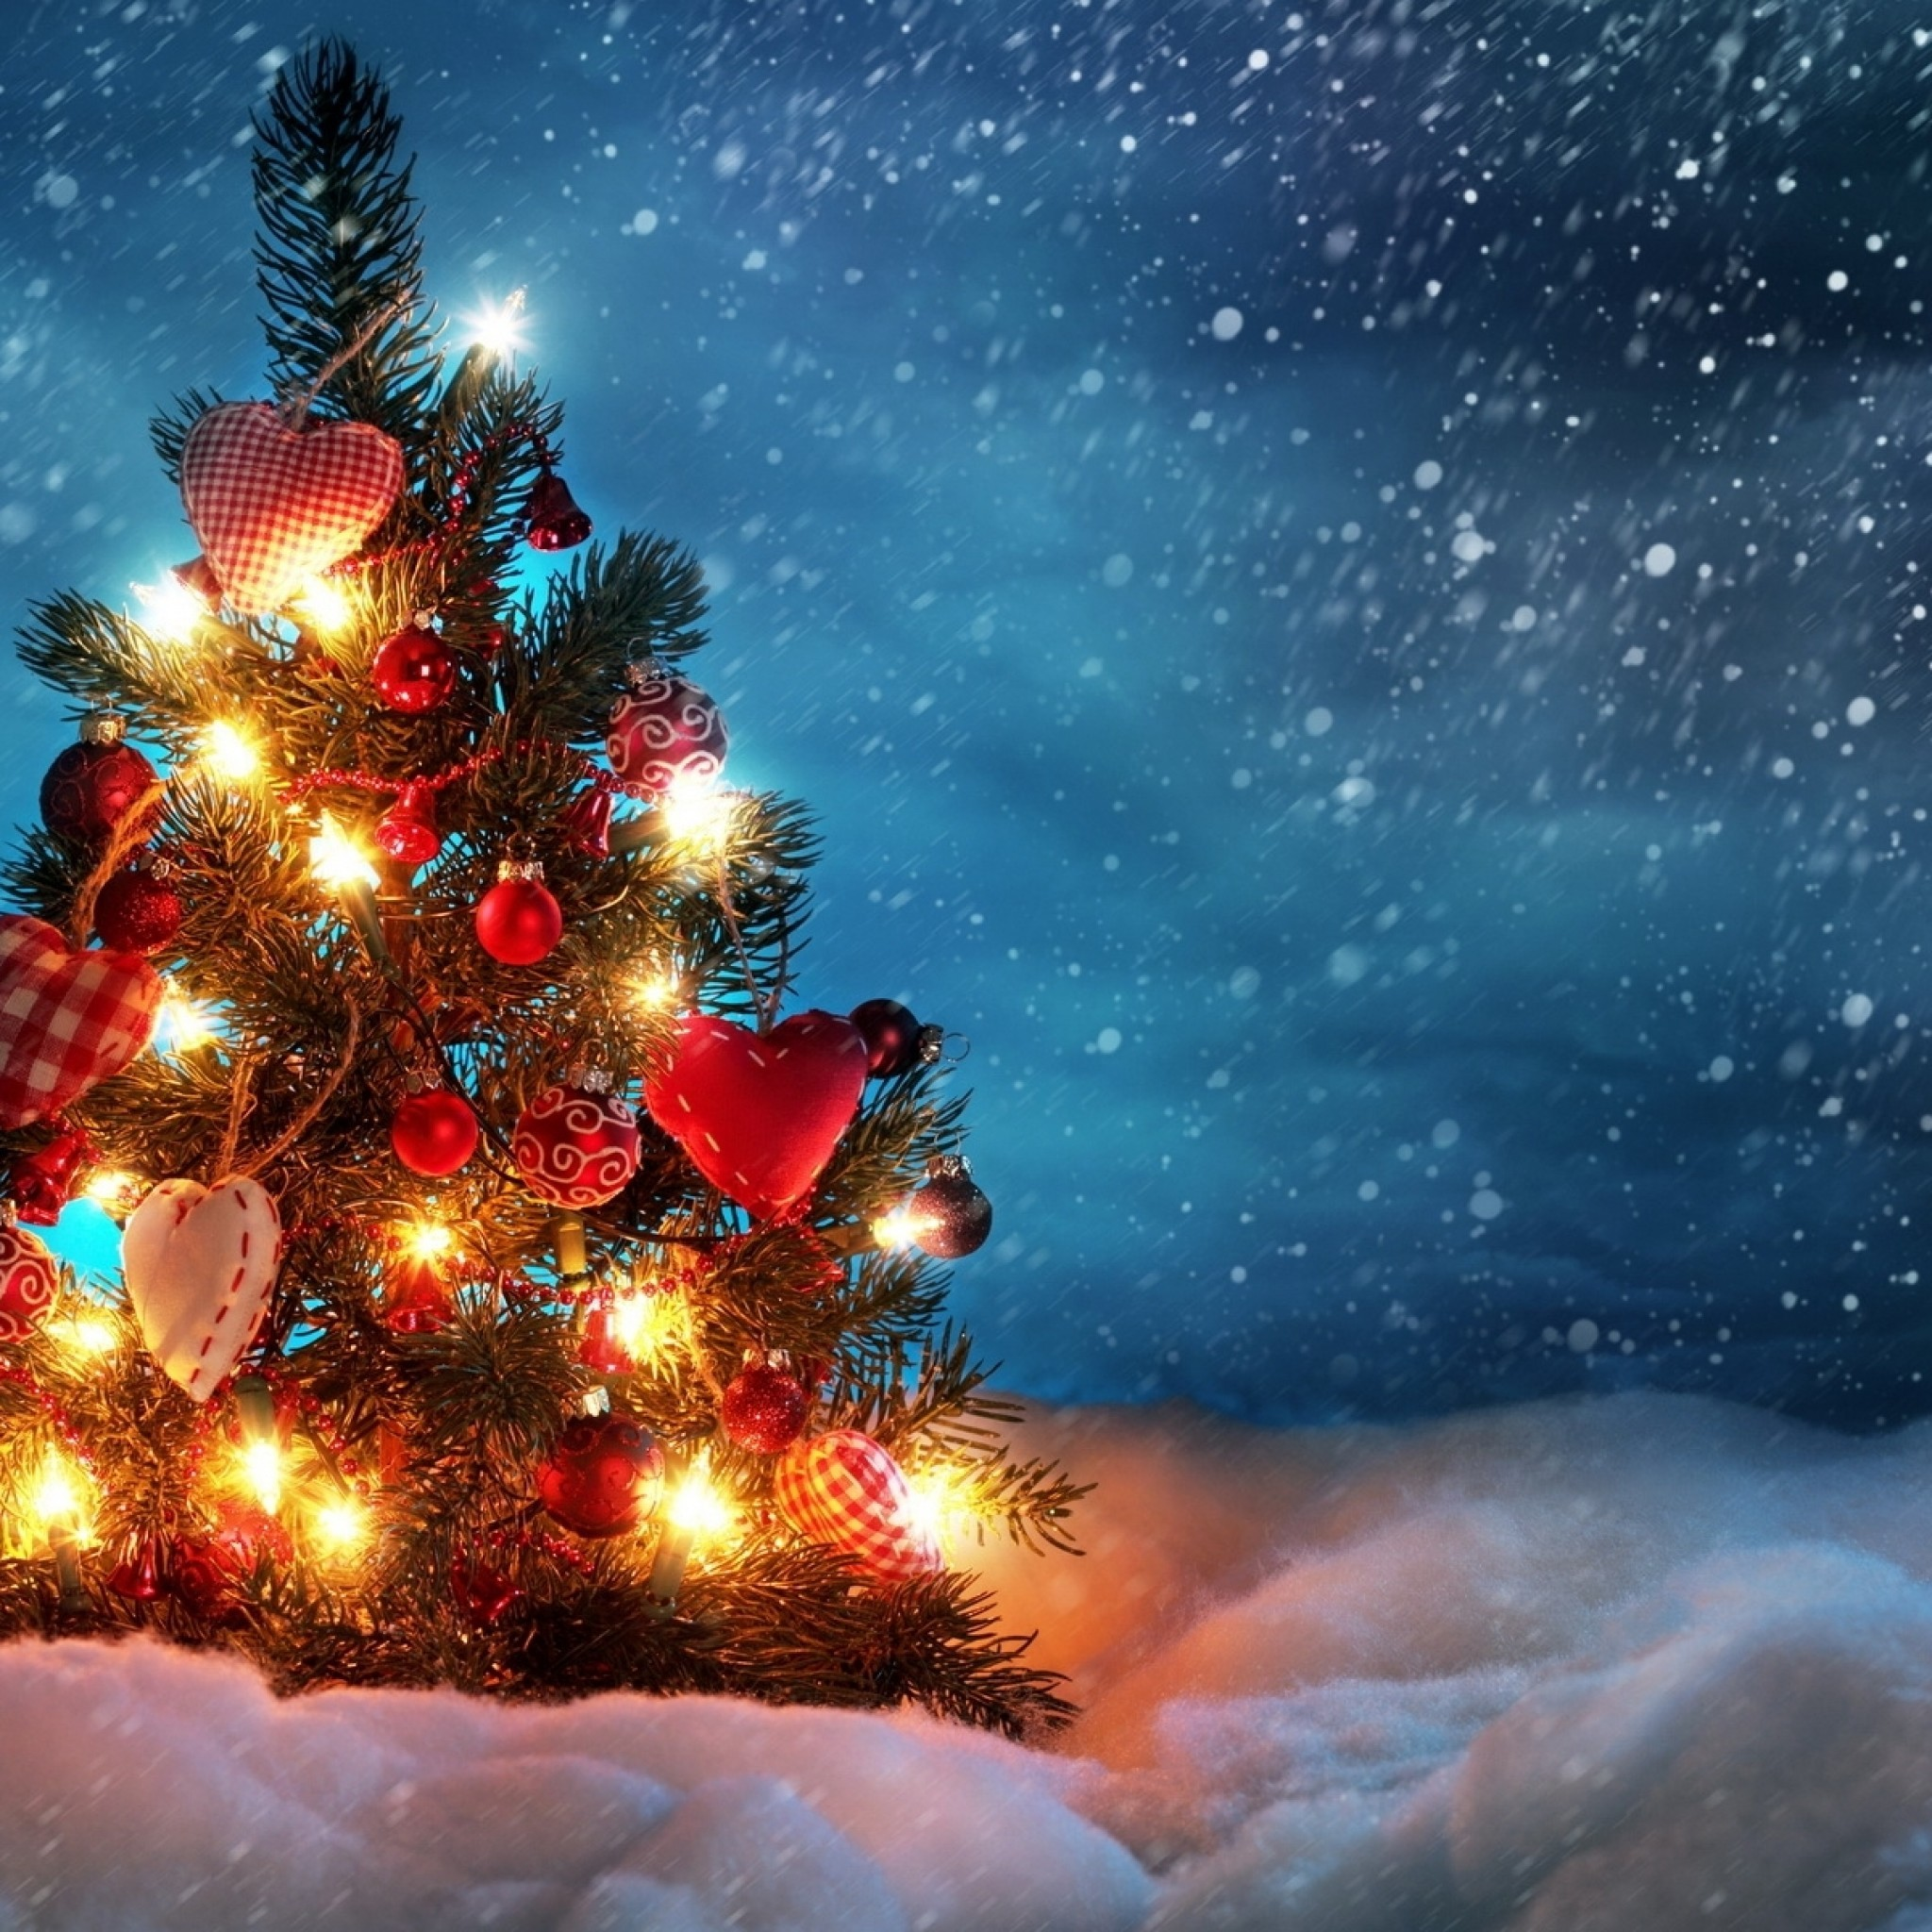 Computer Wallpaper Com: 3D Christmas Backgrounds ·① WallpaperTag